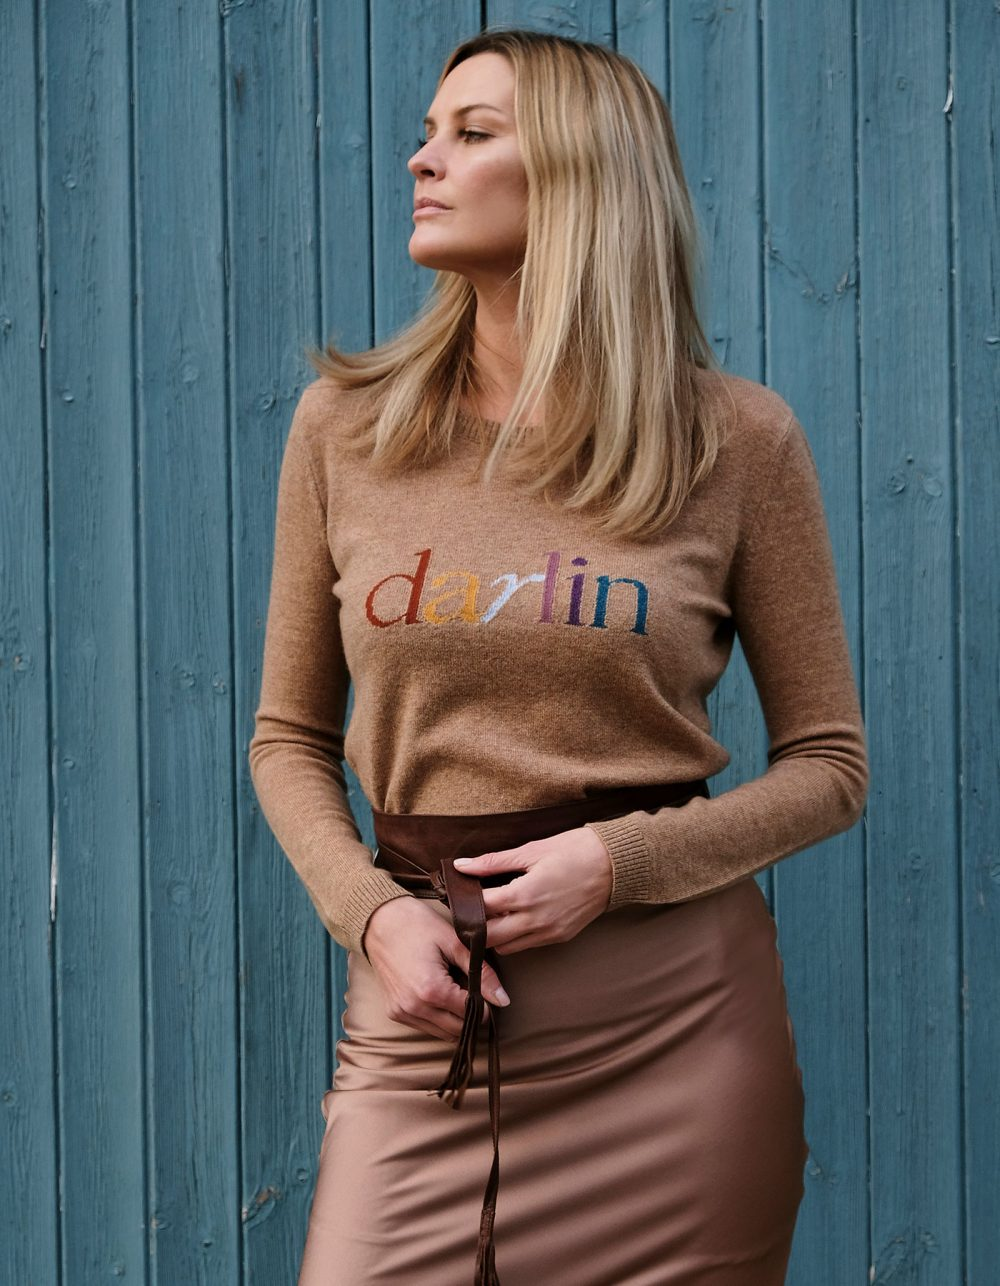 Model in the Darlin Beige cashmere jumper against a wood panel background to show sustainable womens cashmere.